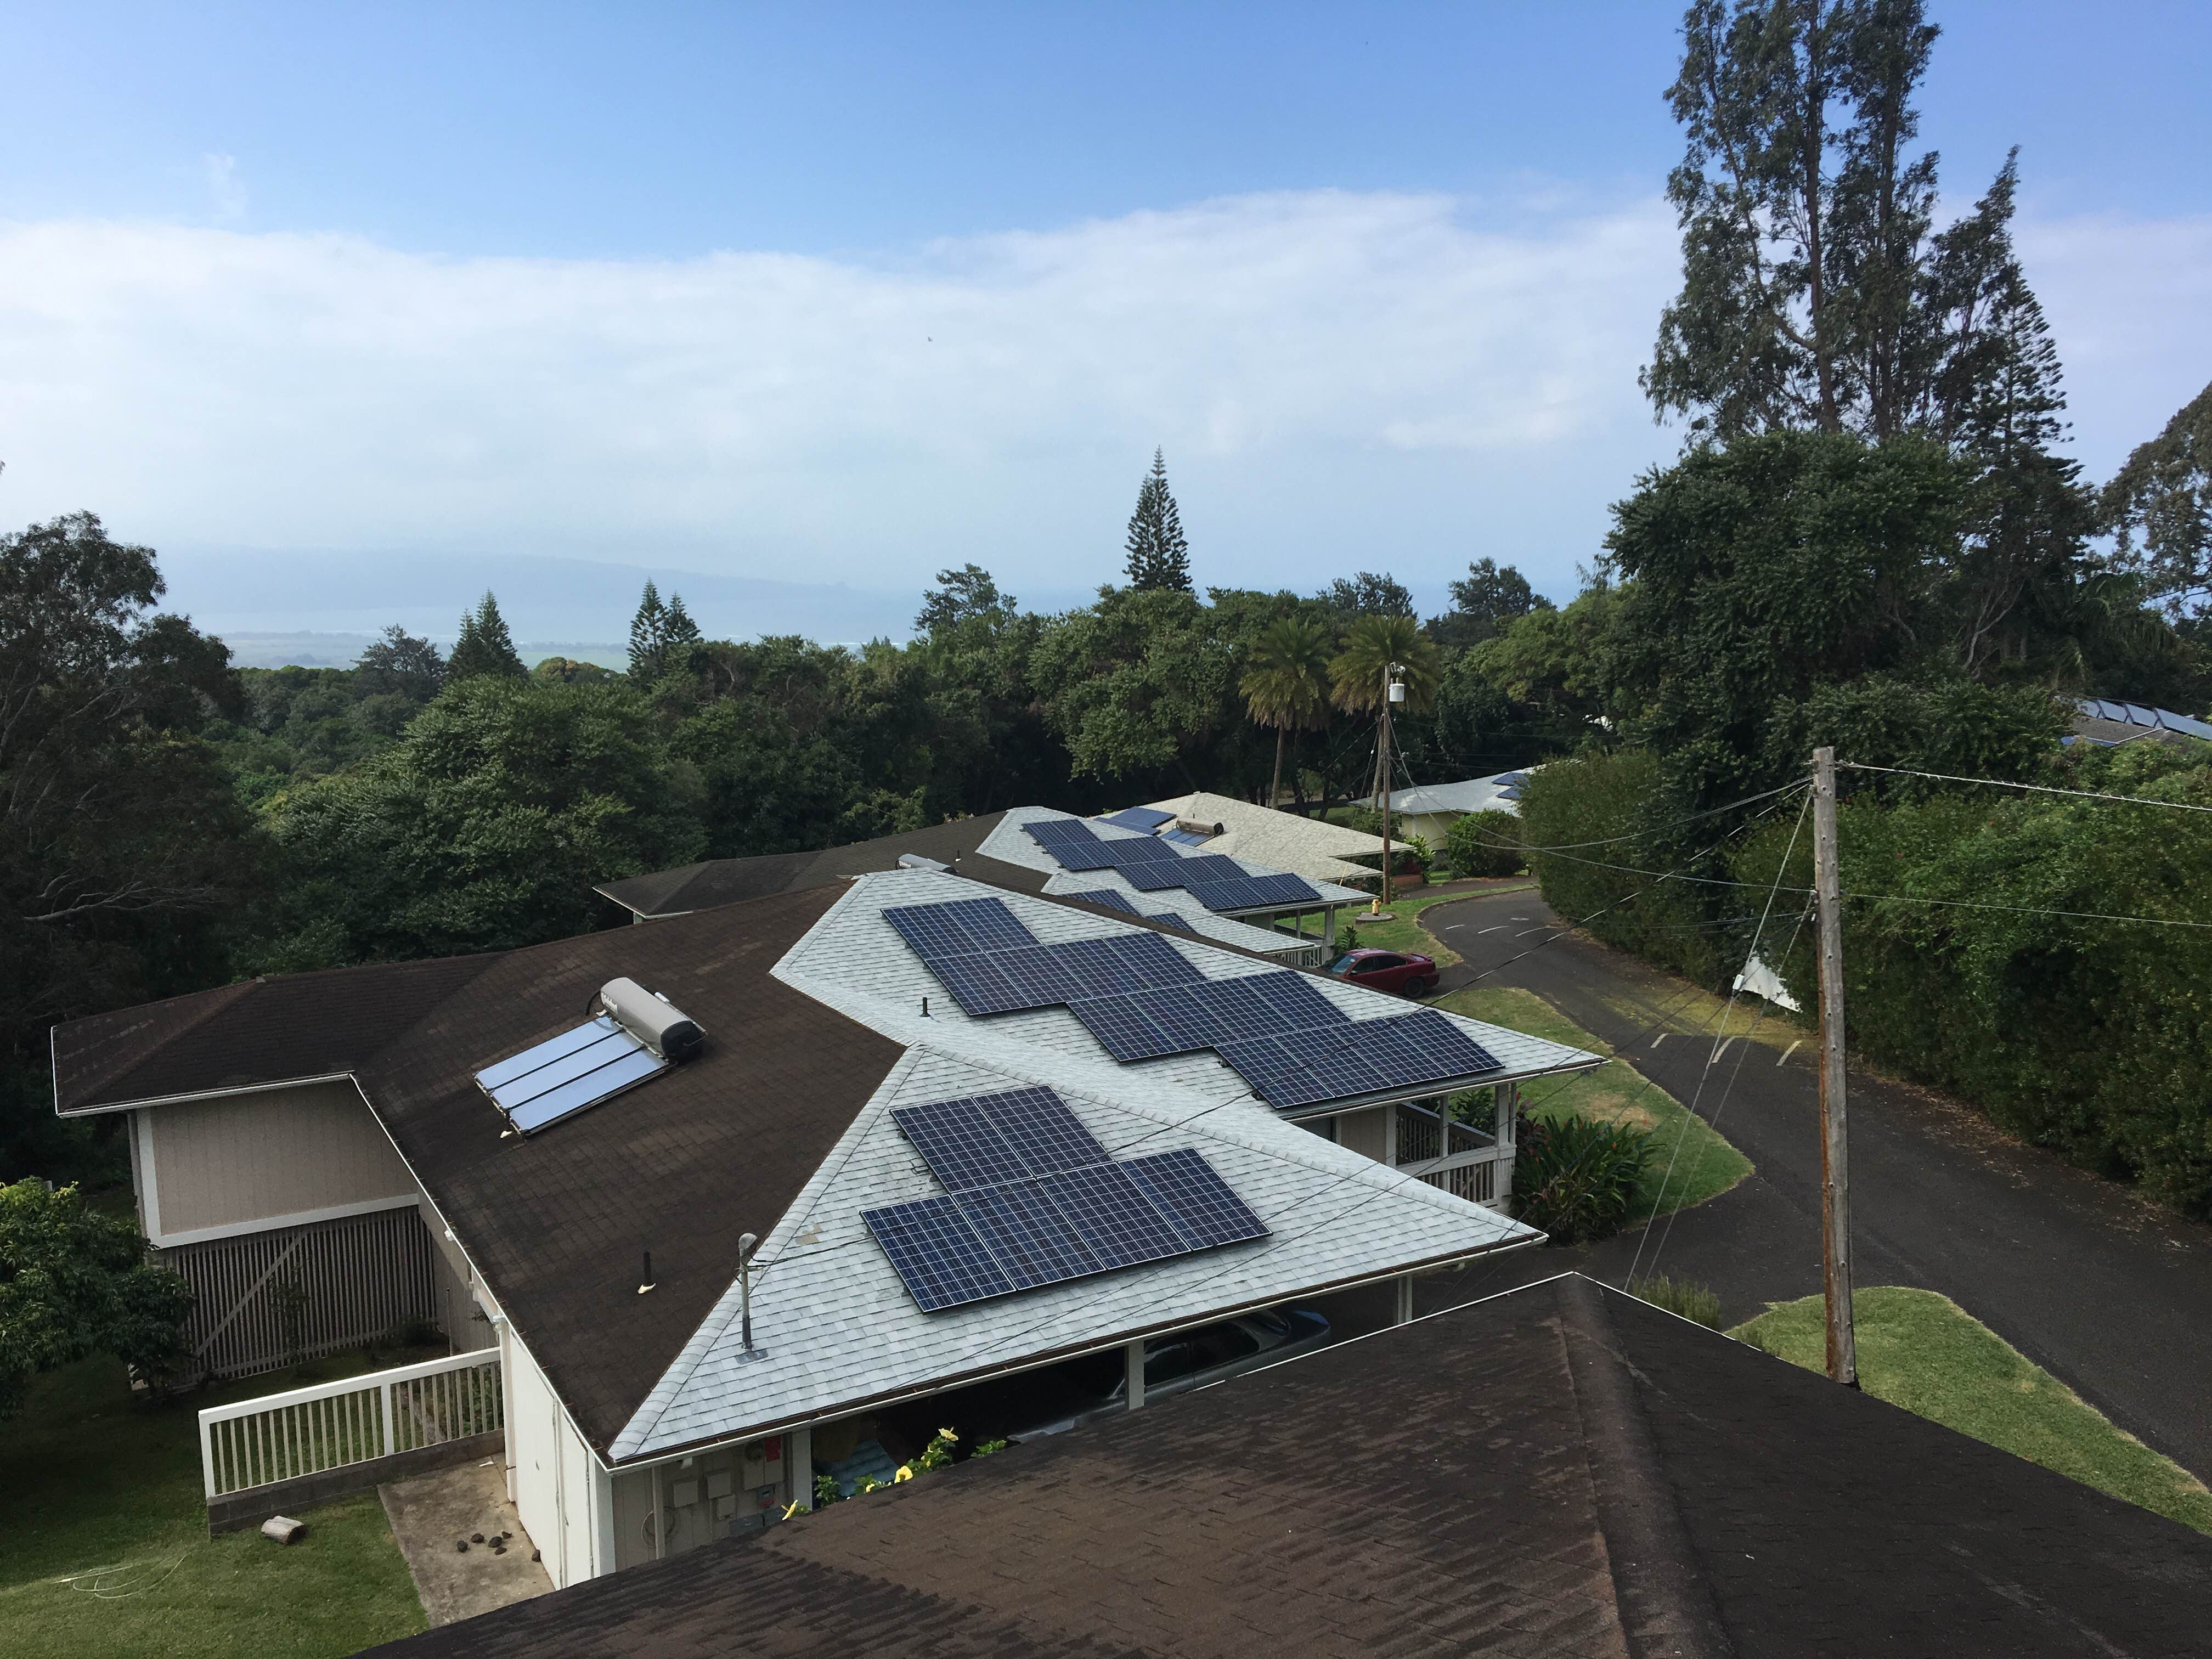 Swell Energy Launches Home Battery Rewards for Hawaiian Electric Customers